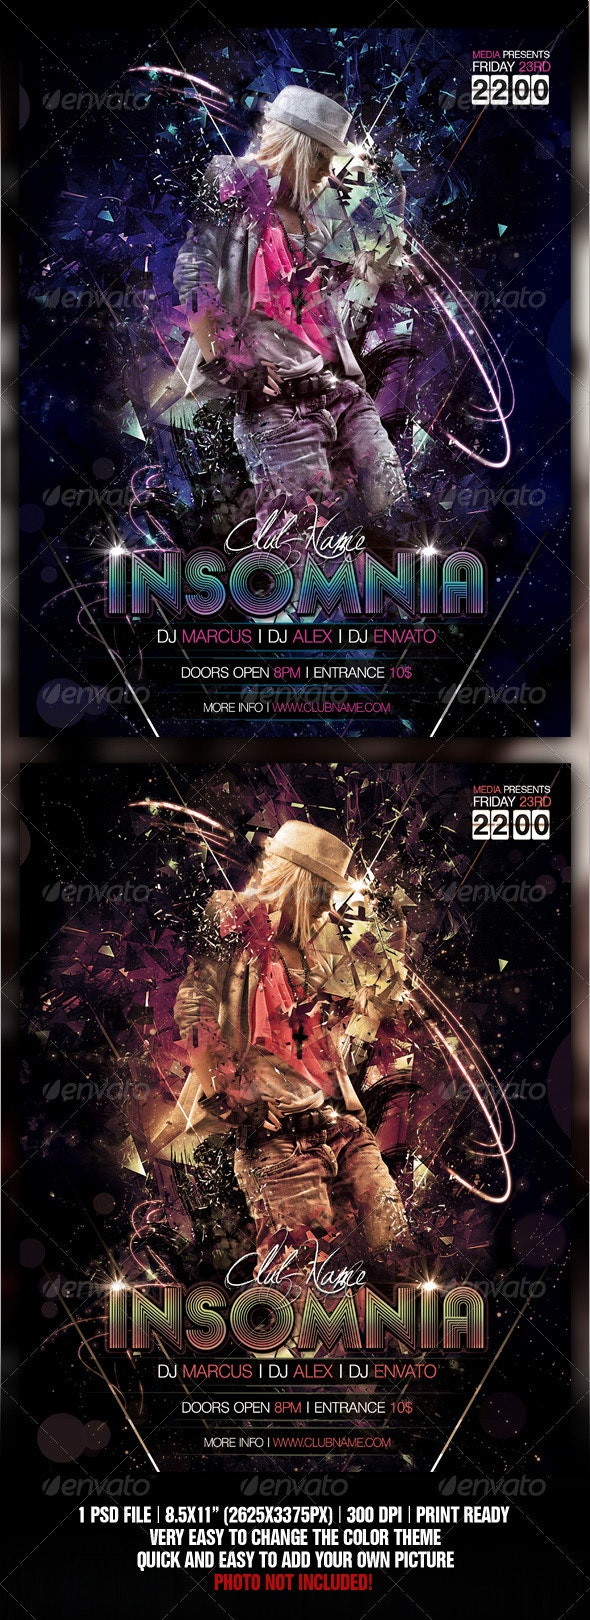 Insomnia Night Club Party / Concert Flyer / Poster - Clubs & Parties Events